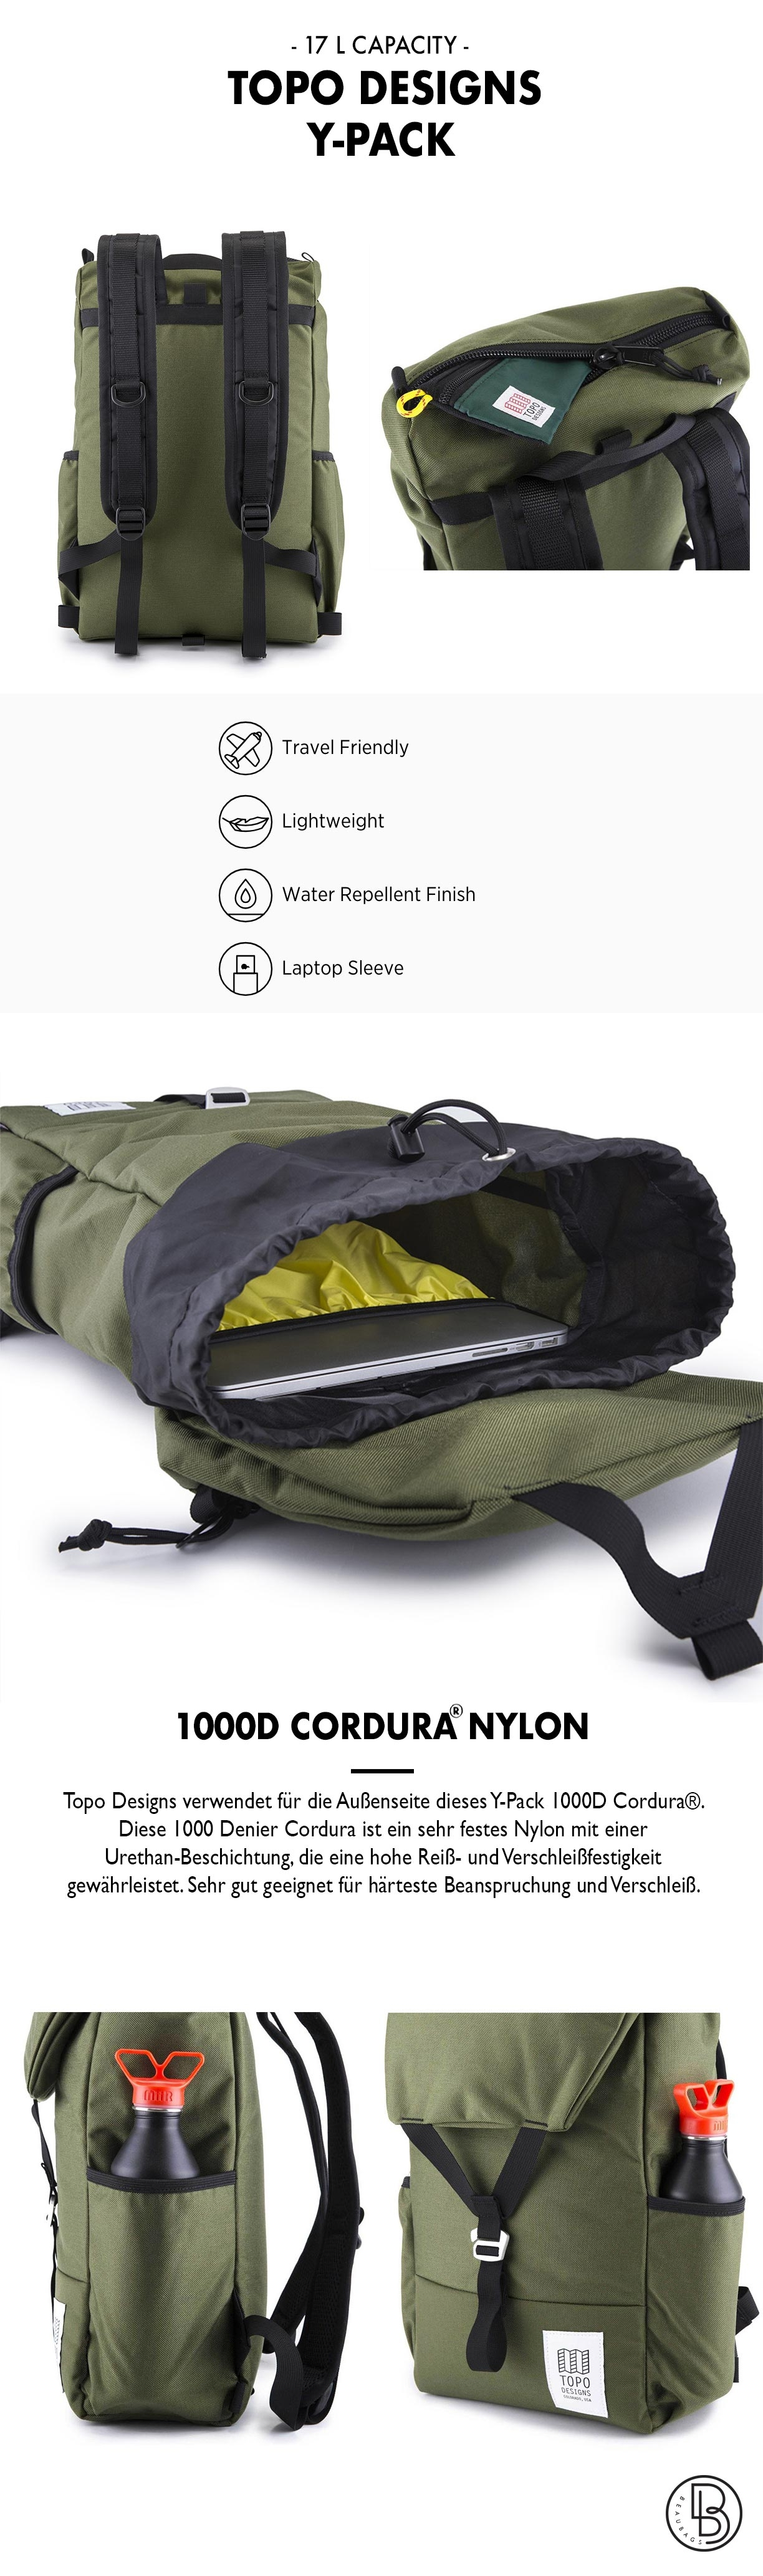 Topo Designs Y-Pack Produktinformationen